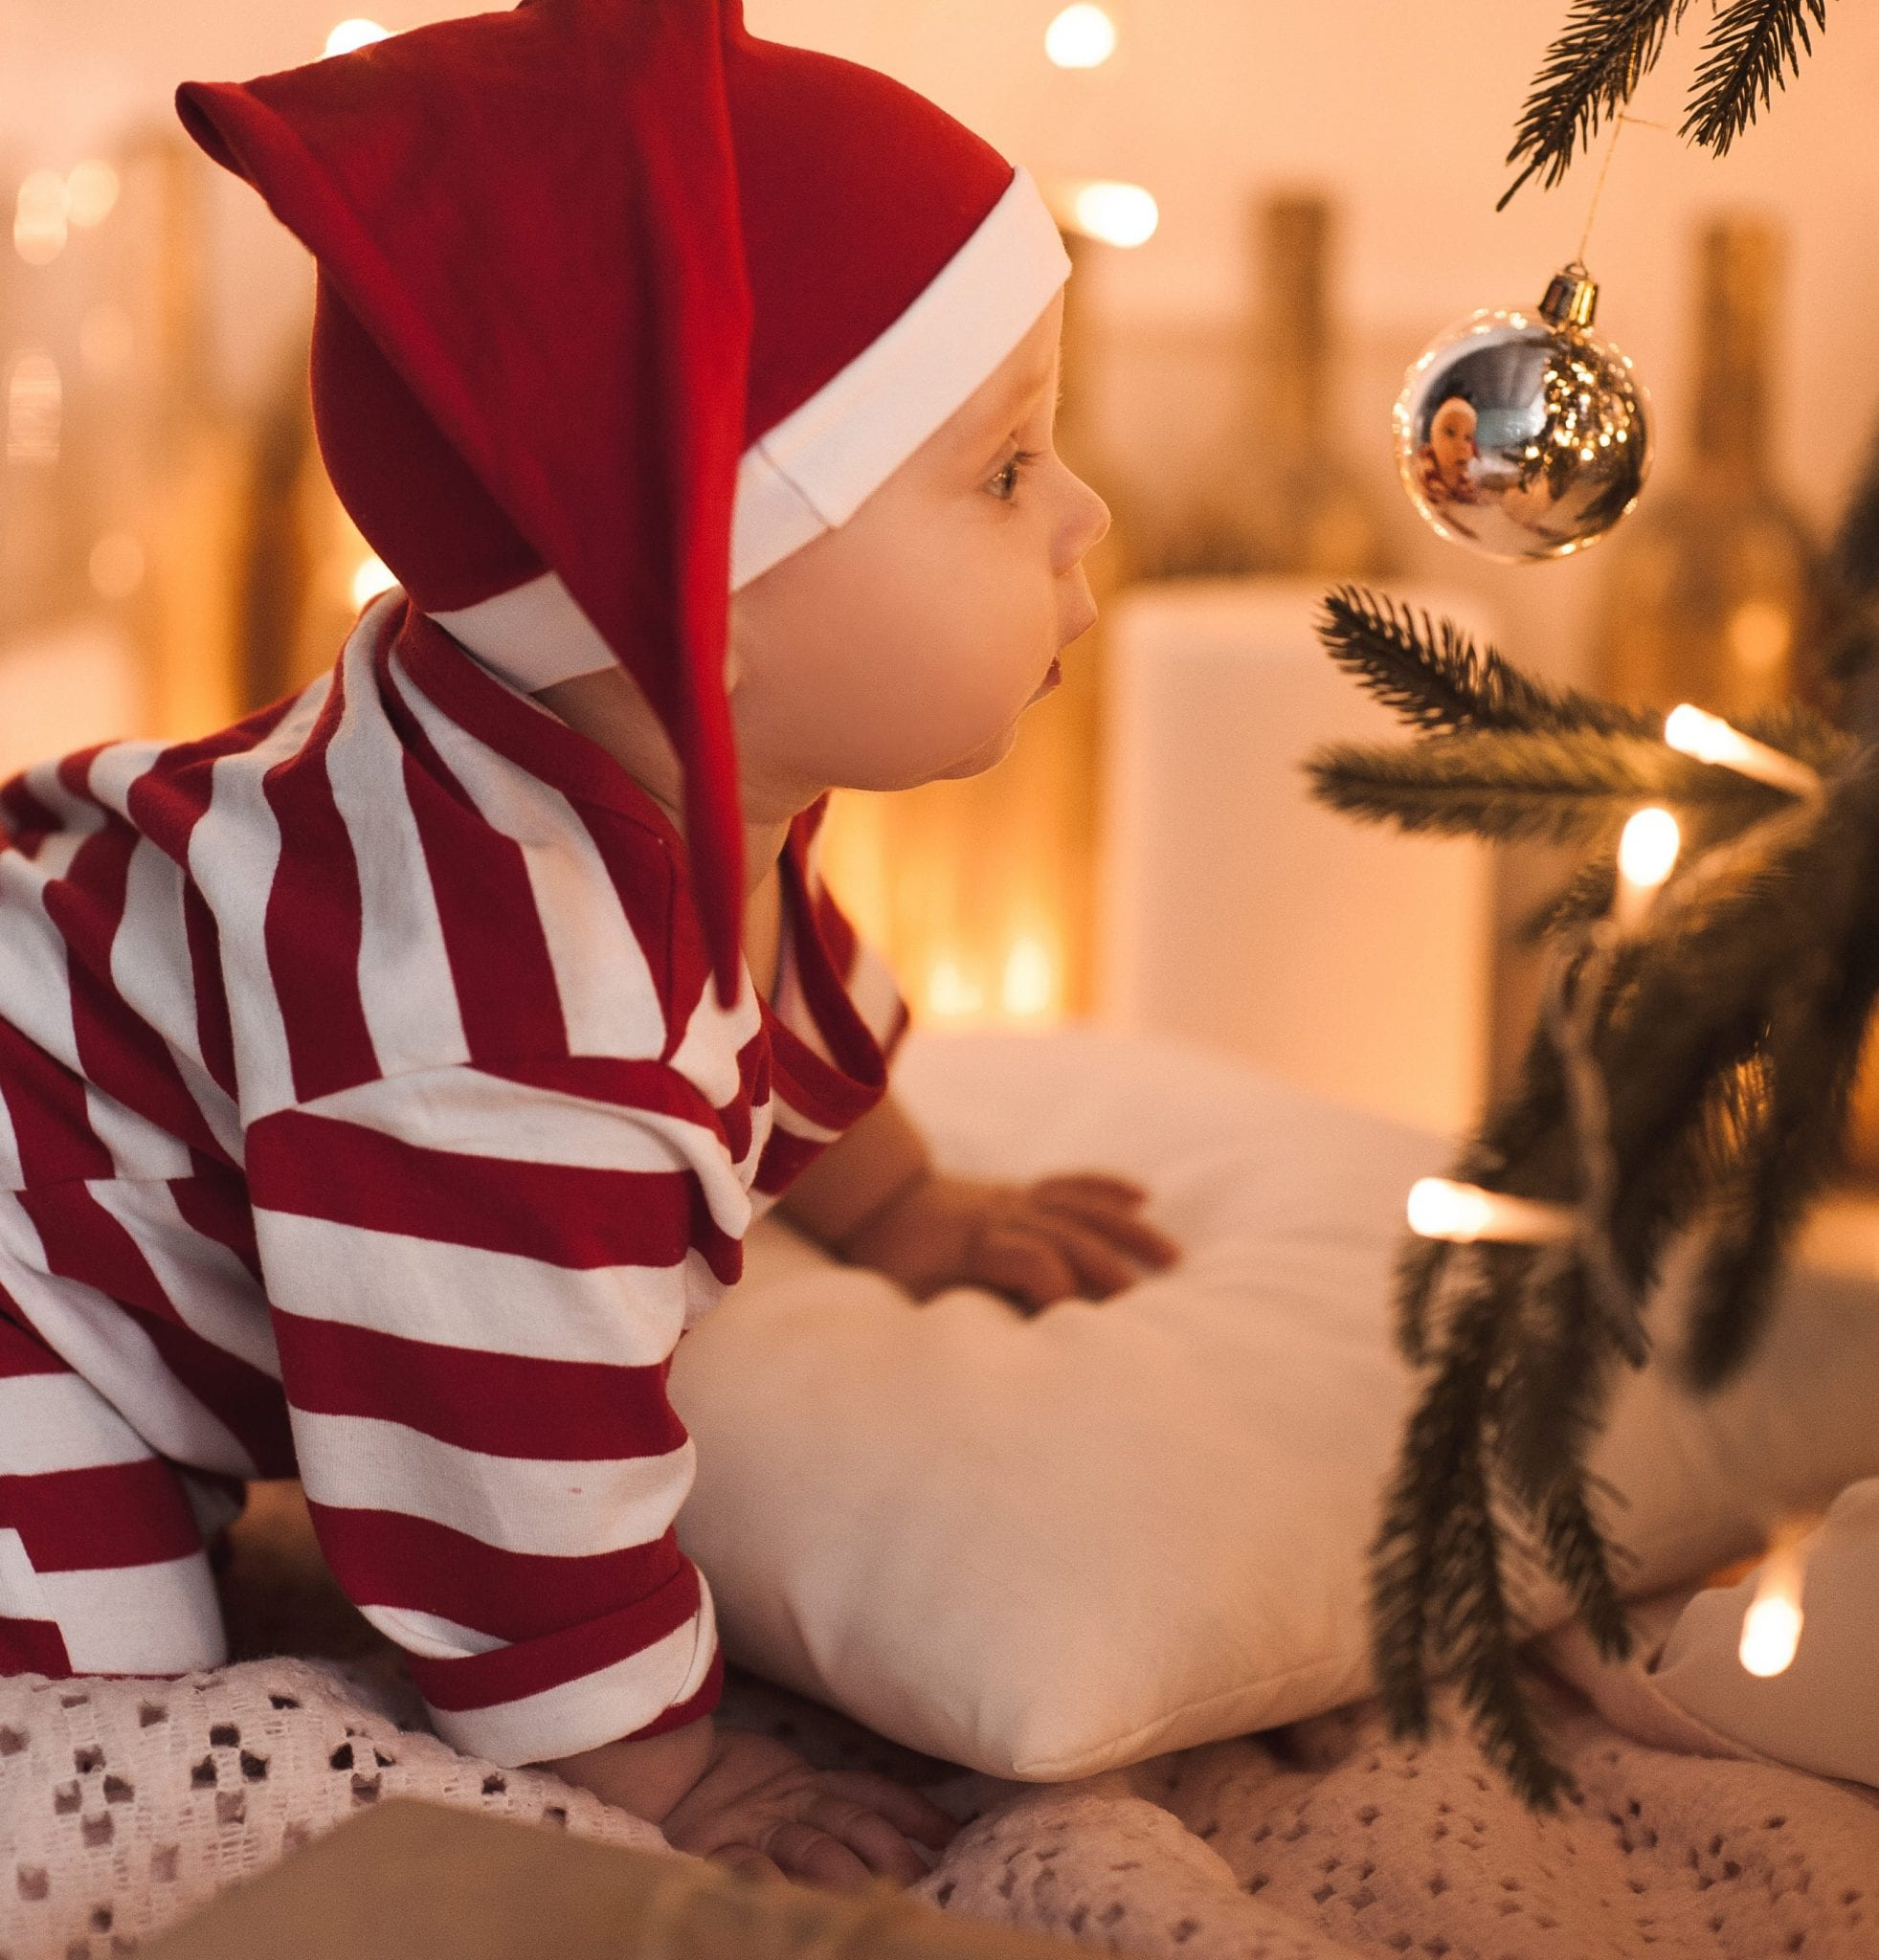 Baby's First Christmas – 8 Things to Make it Special